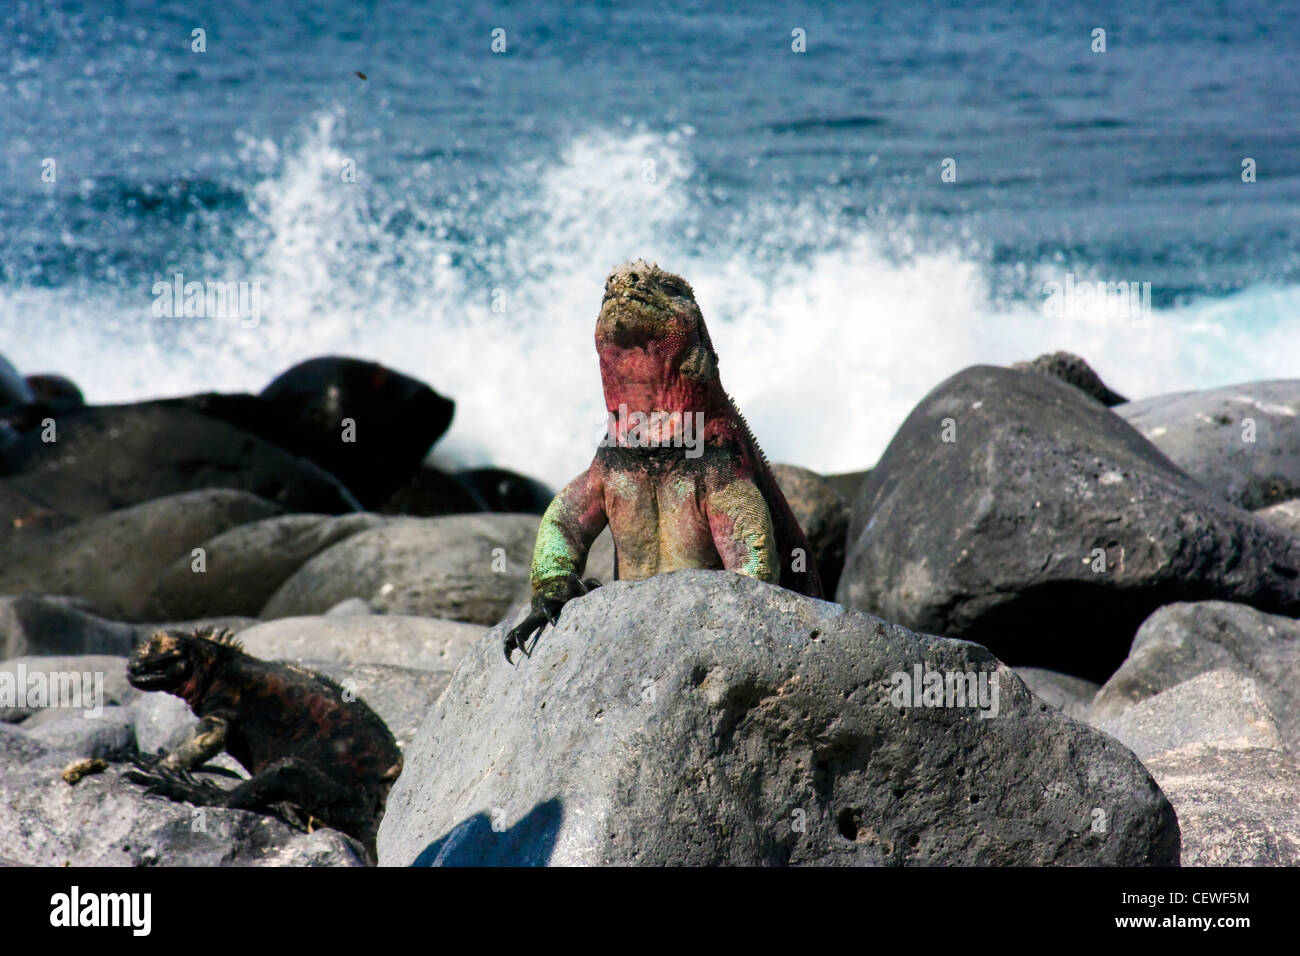 Marine iguana in front of crashing waves on rocks in the Galapagos Islands - Stock Image